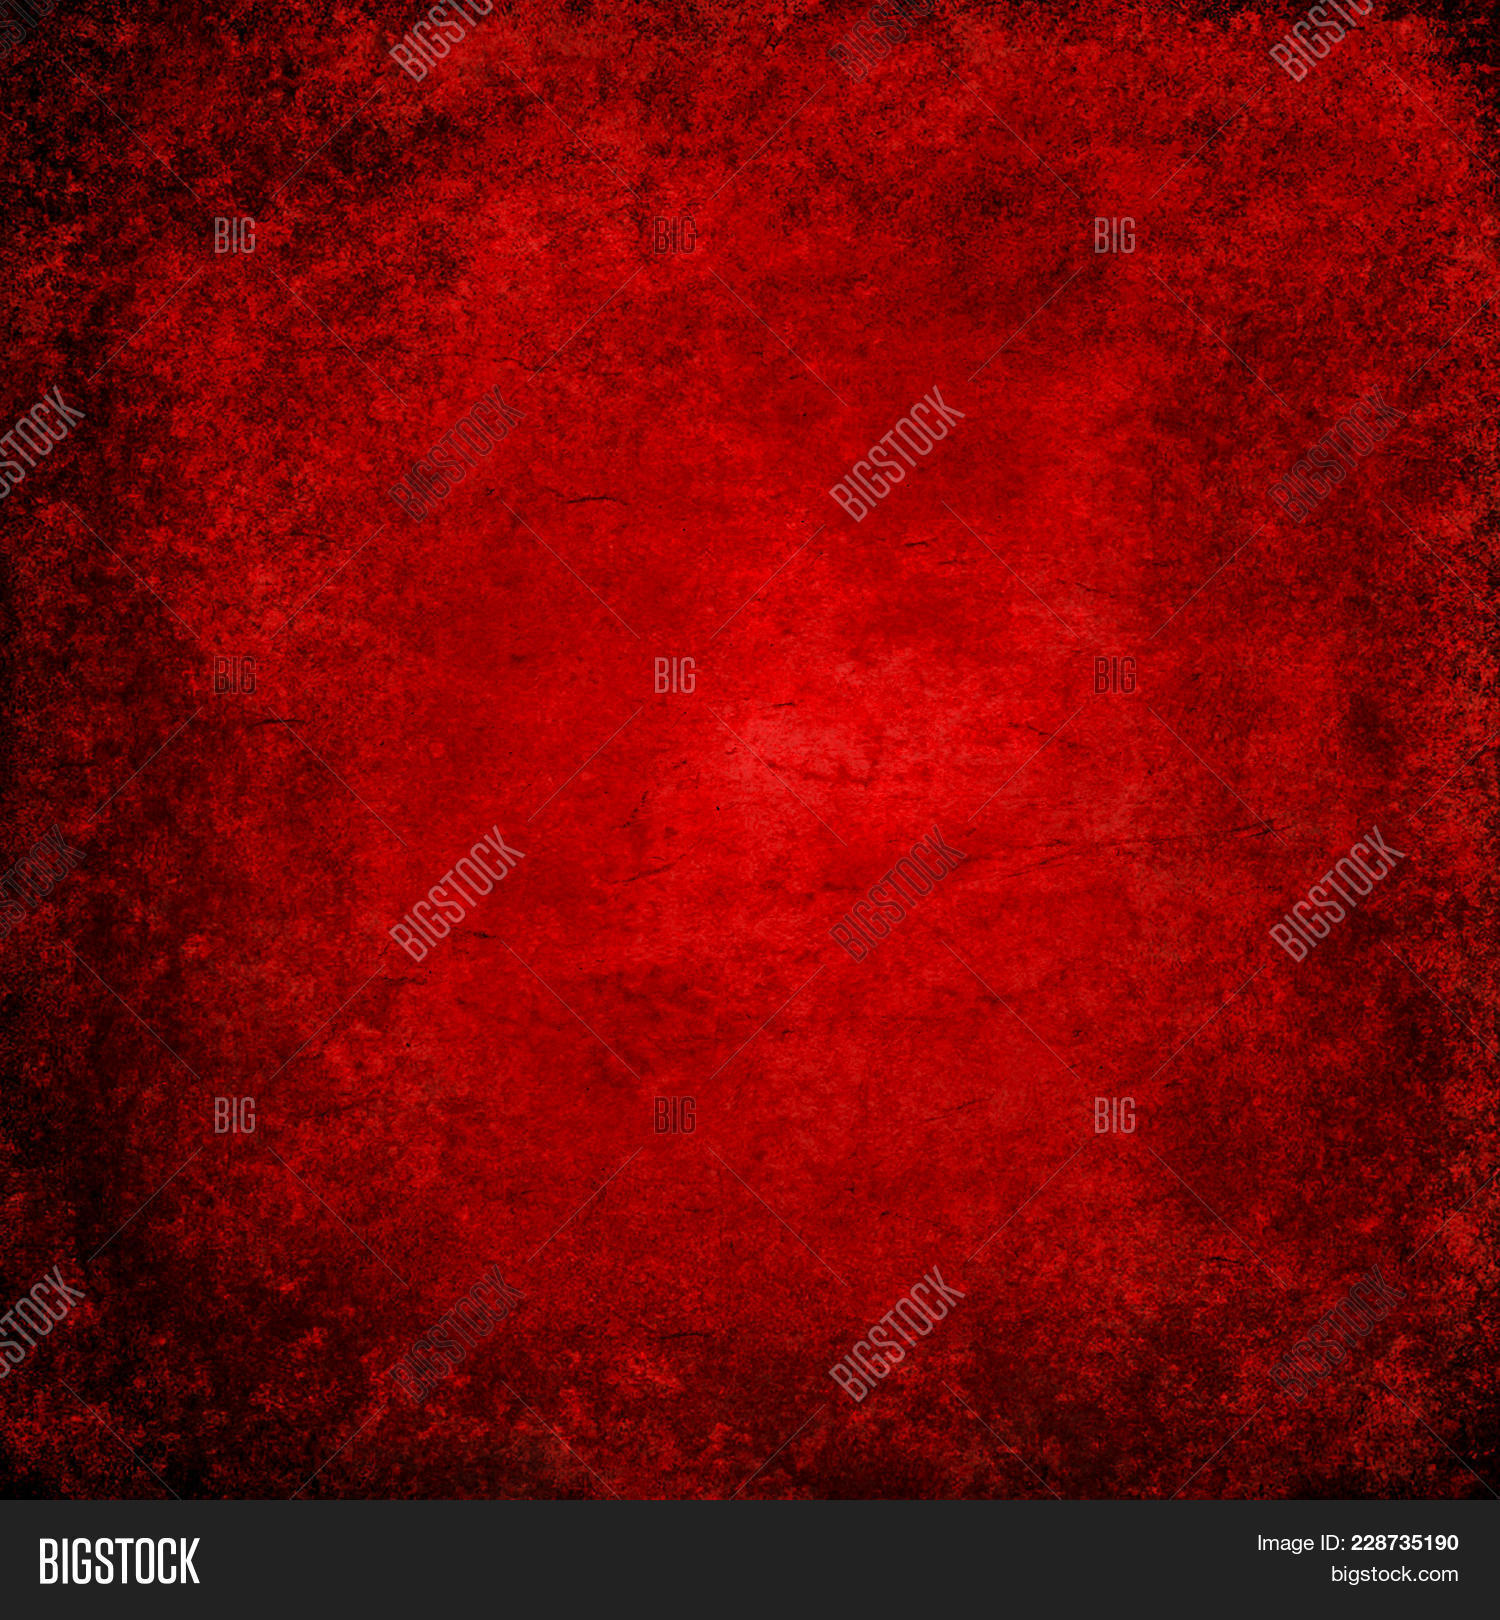 Bloody Blood Red Image Photo Free Trial Bigstock This is an abstract red blood background with clot and hemoglobin look. bloody blood red image photo free